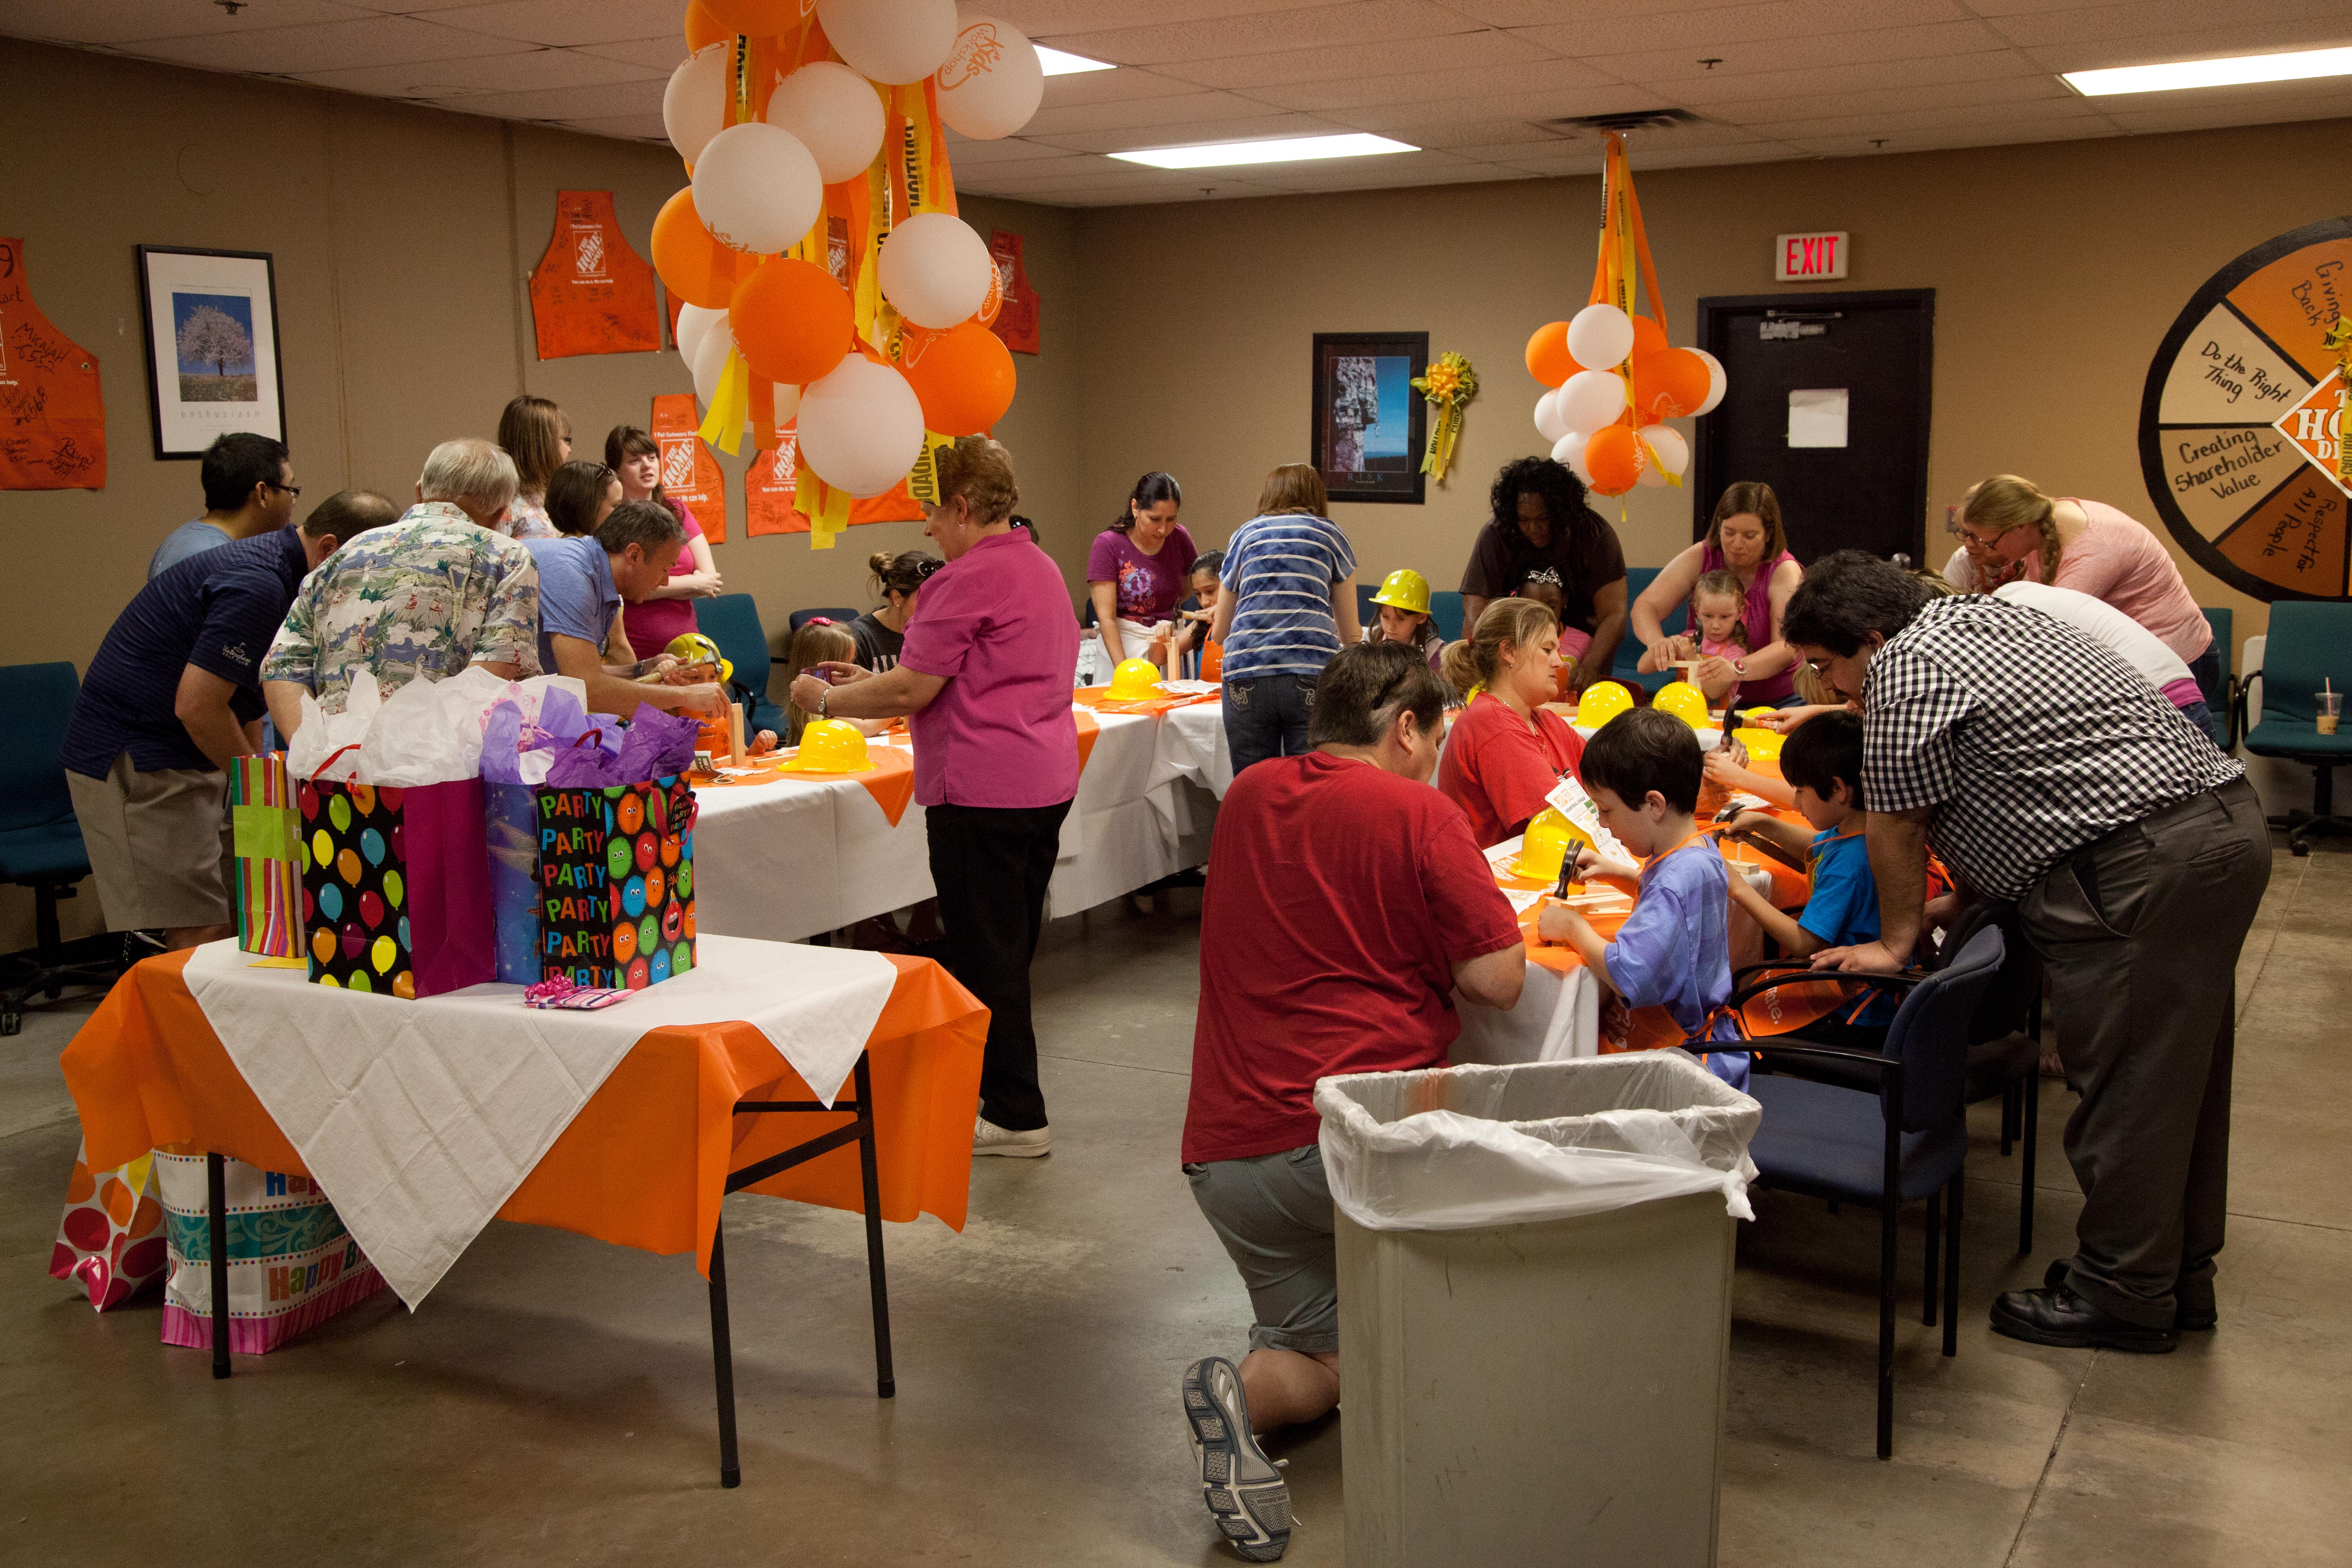 birthday activities for kids at home ; home-depot-kids-workshop-party